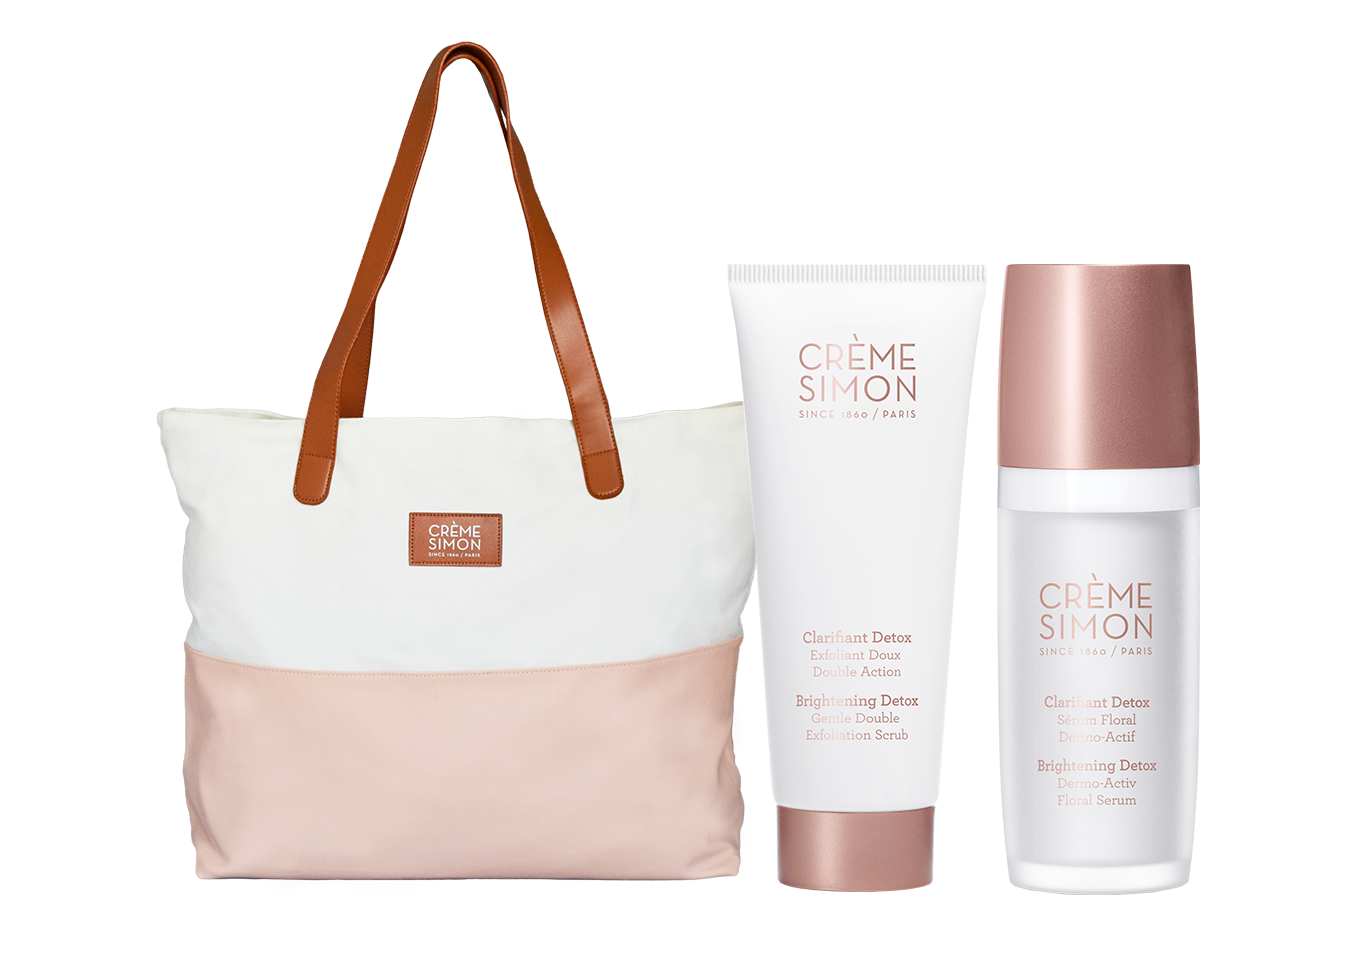 Cr me simon french. Skin clipart skincare